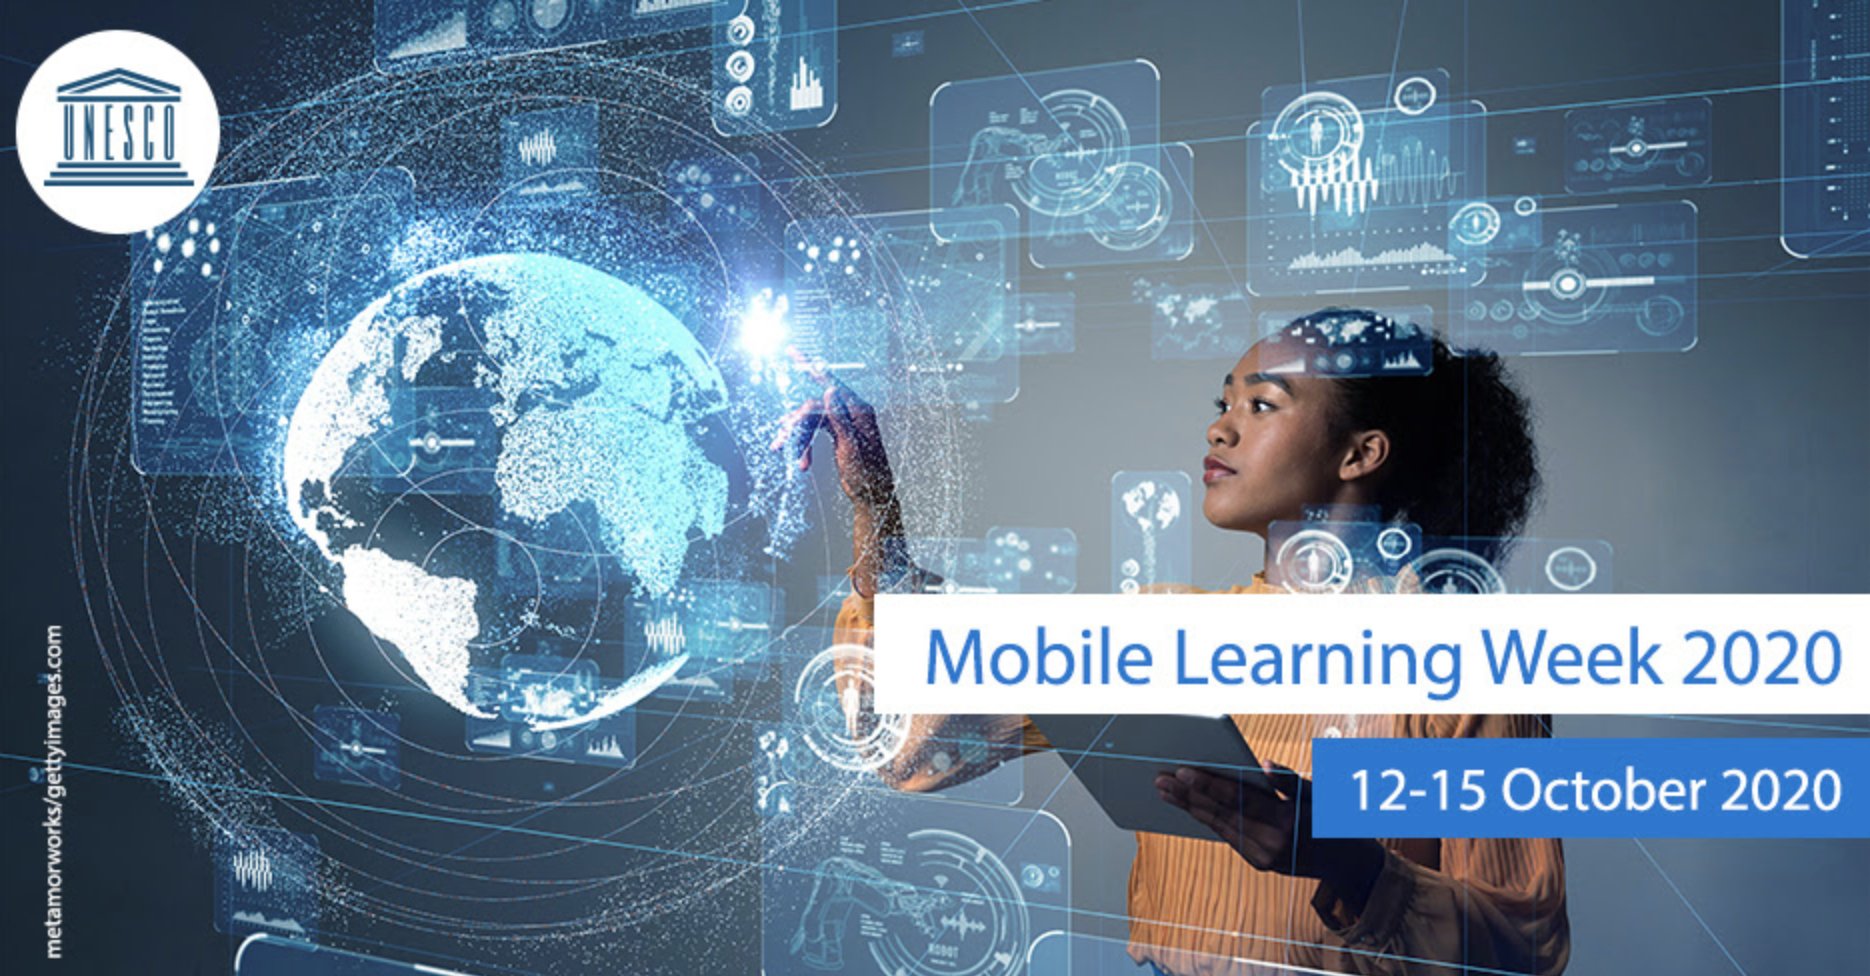 The online edition of Mobile Learning Week 2020 will be held from 12 to 15 October